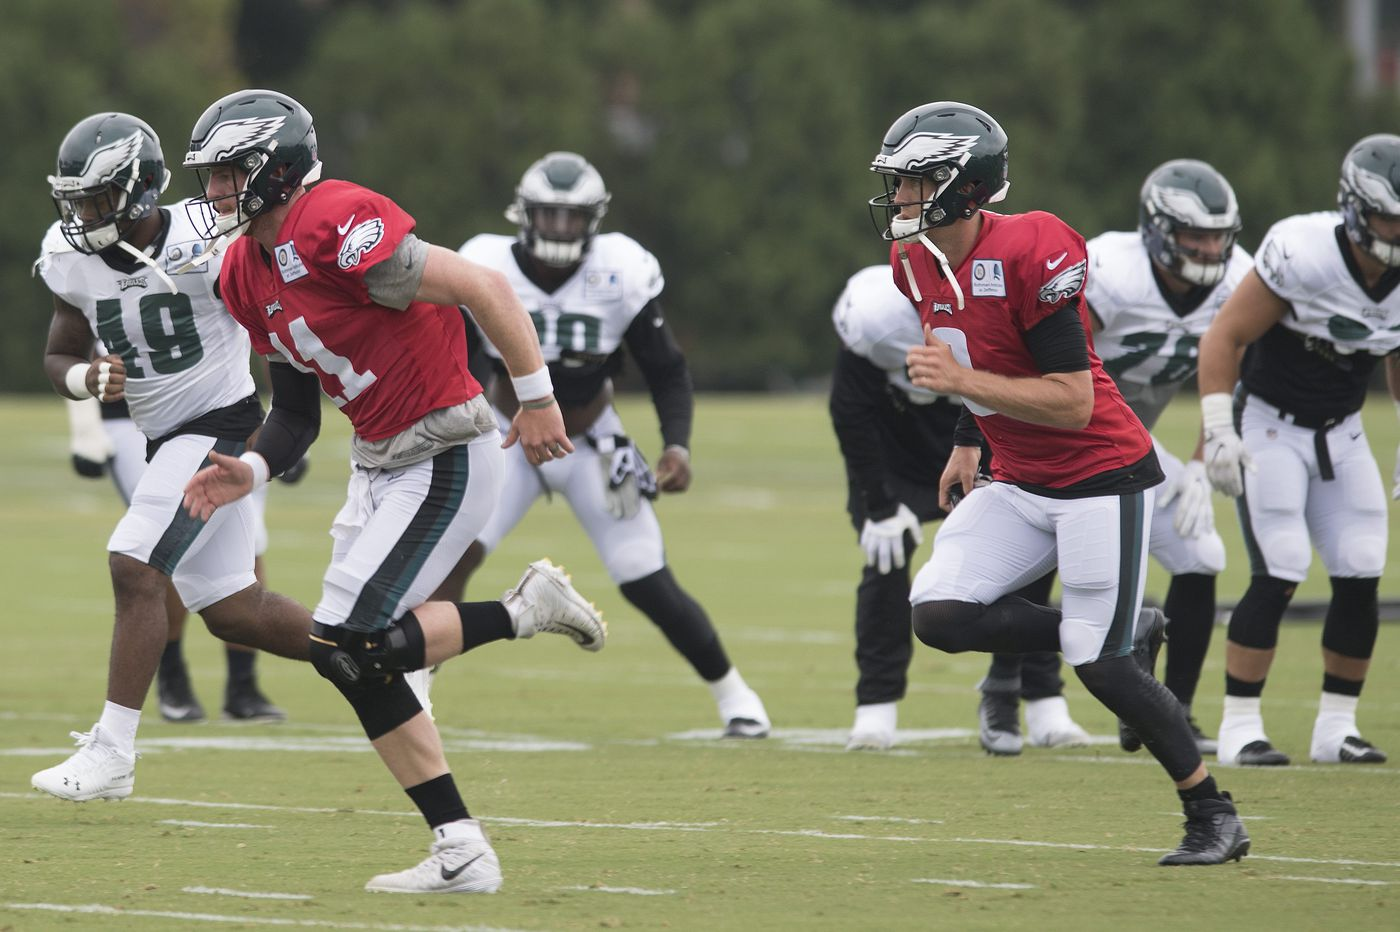 Eagles practice observations: Dallas Goedert lives; Jalen Mills competes; Avonte Maddox rises